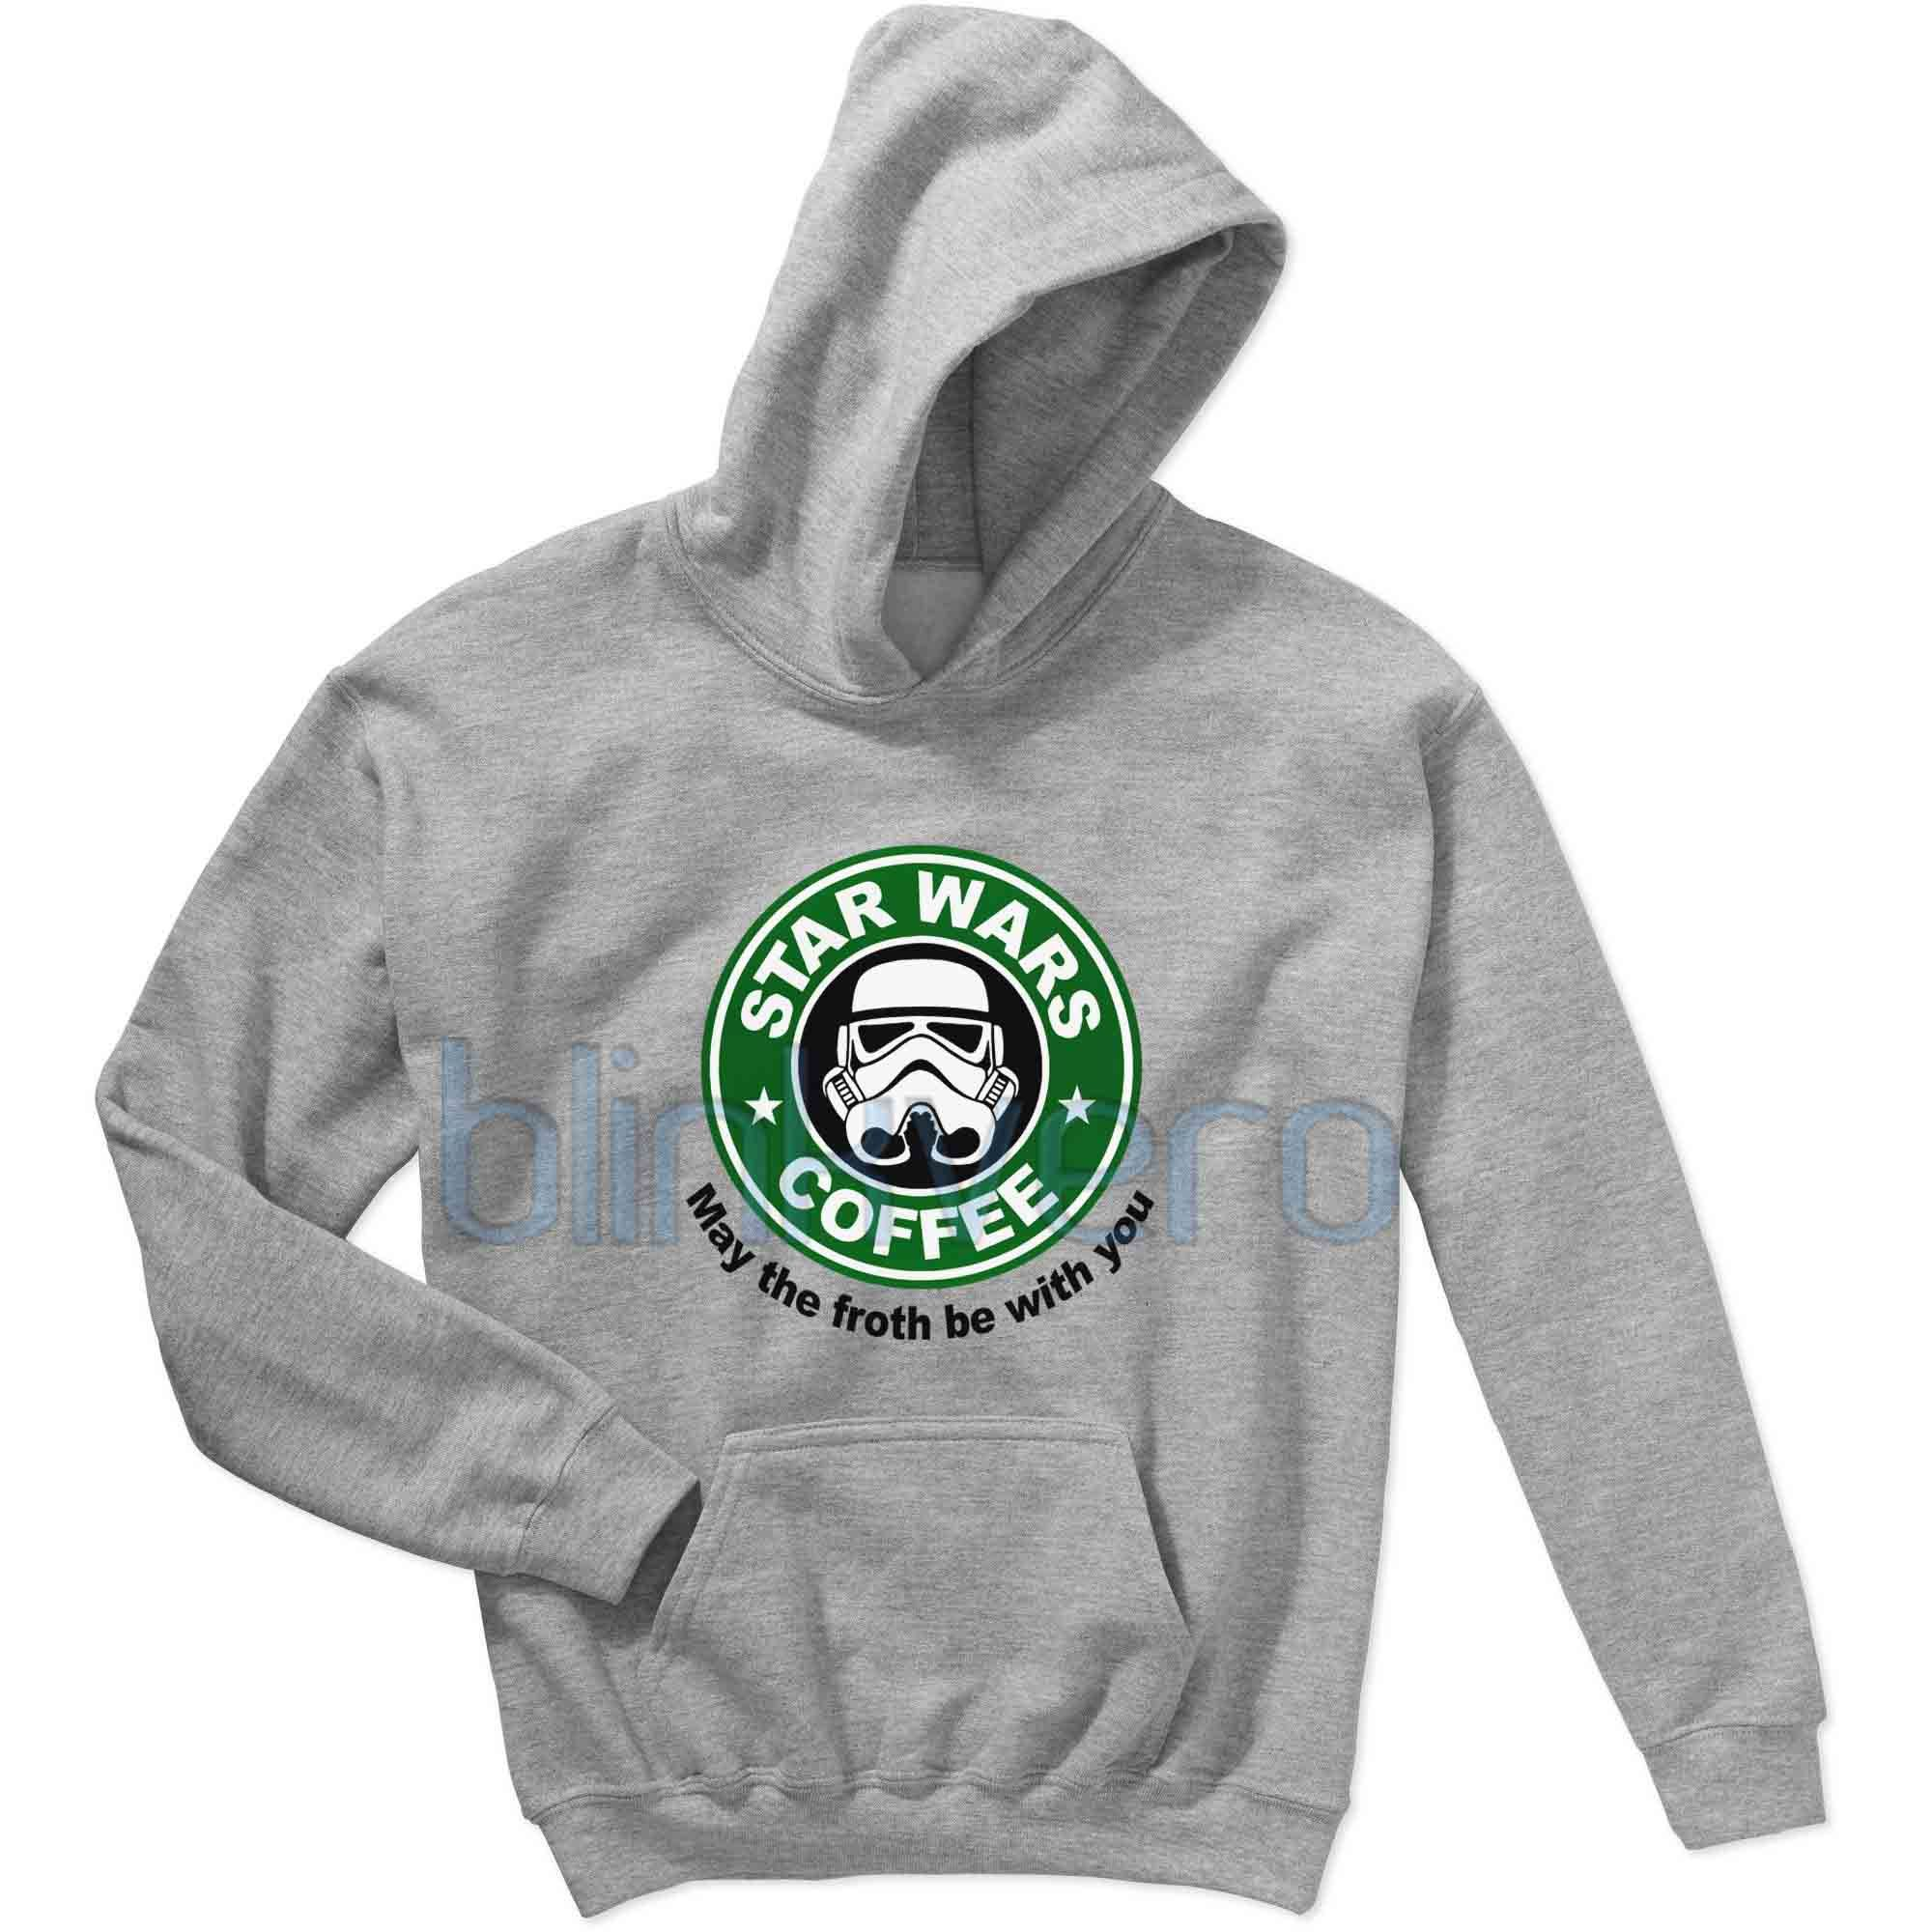 Star wars starbuck hoodie girls and mens hoodies christmas t shirt tshirt